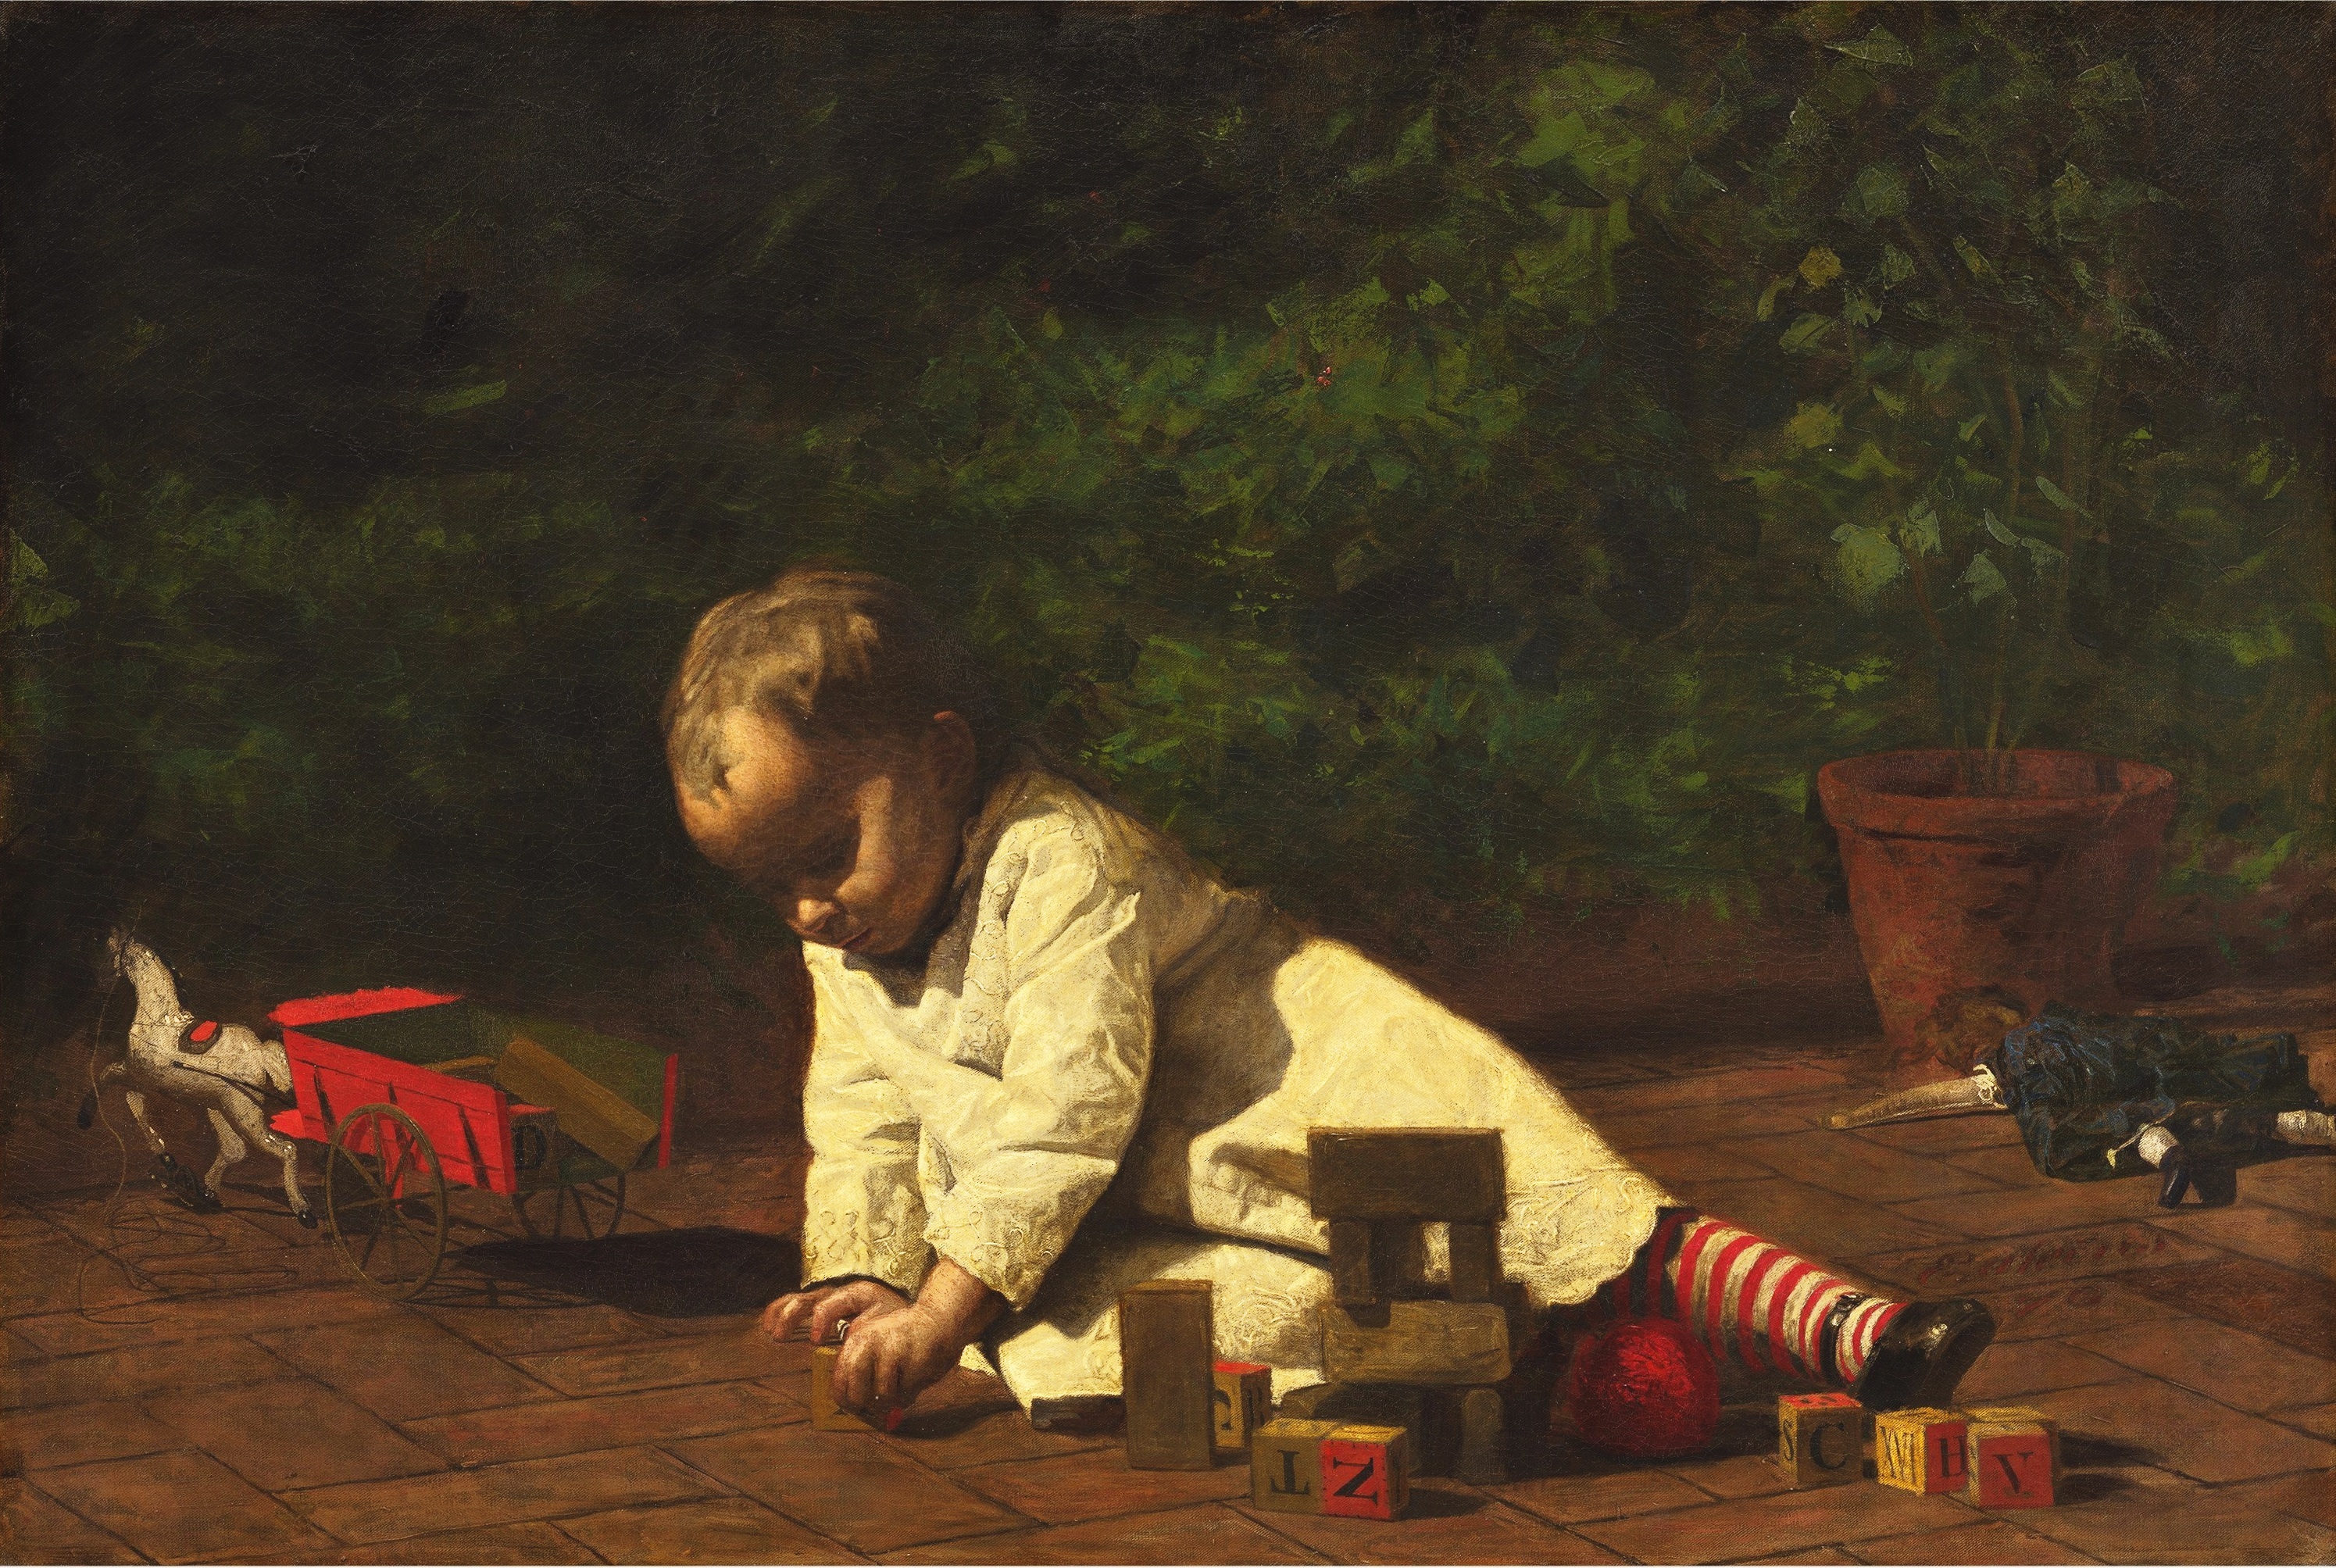 Thomas_Eakins_-_Baby_at_Play